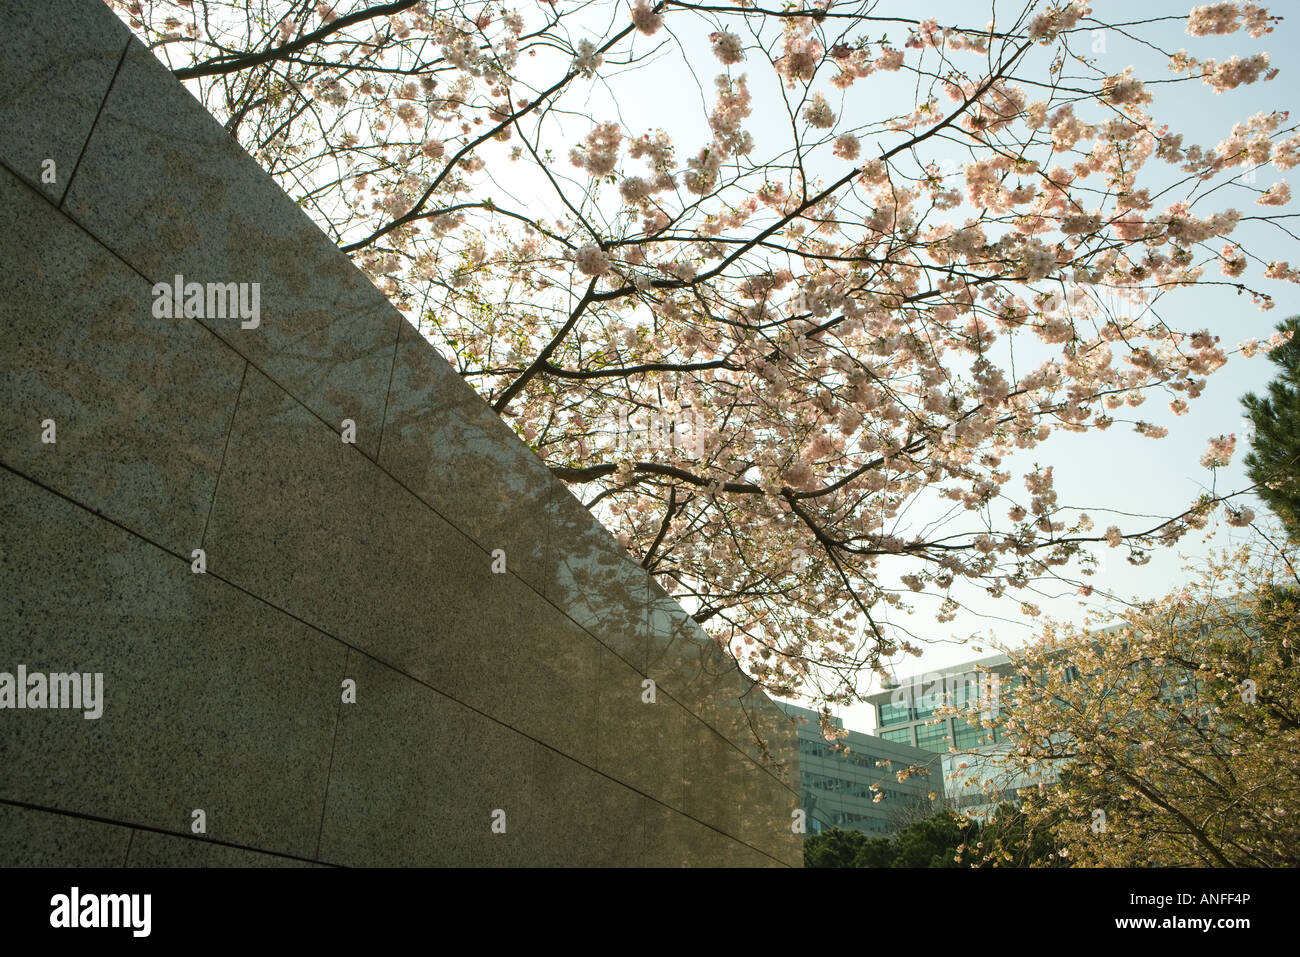 Tree in blossom and wall - Stock Image